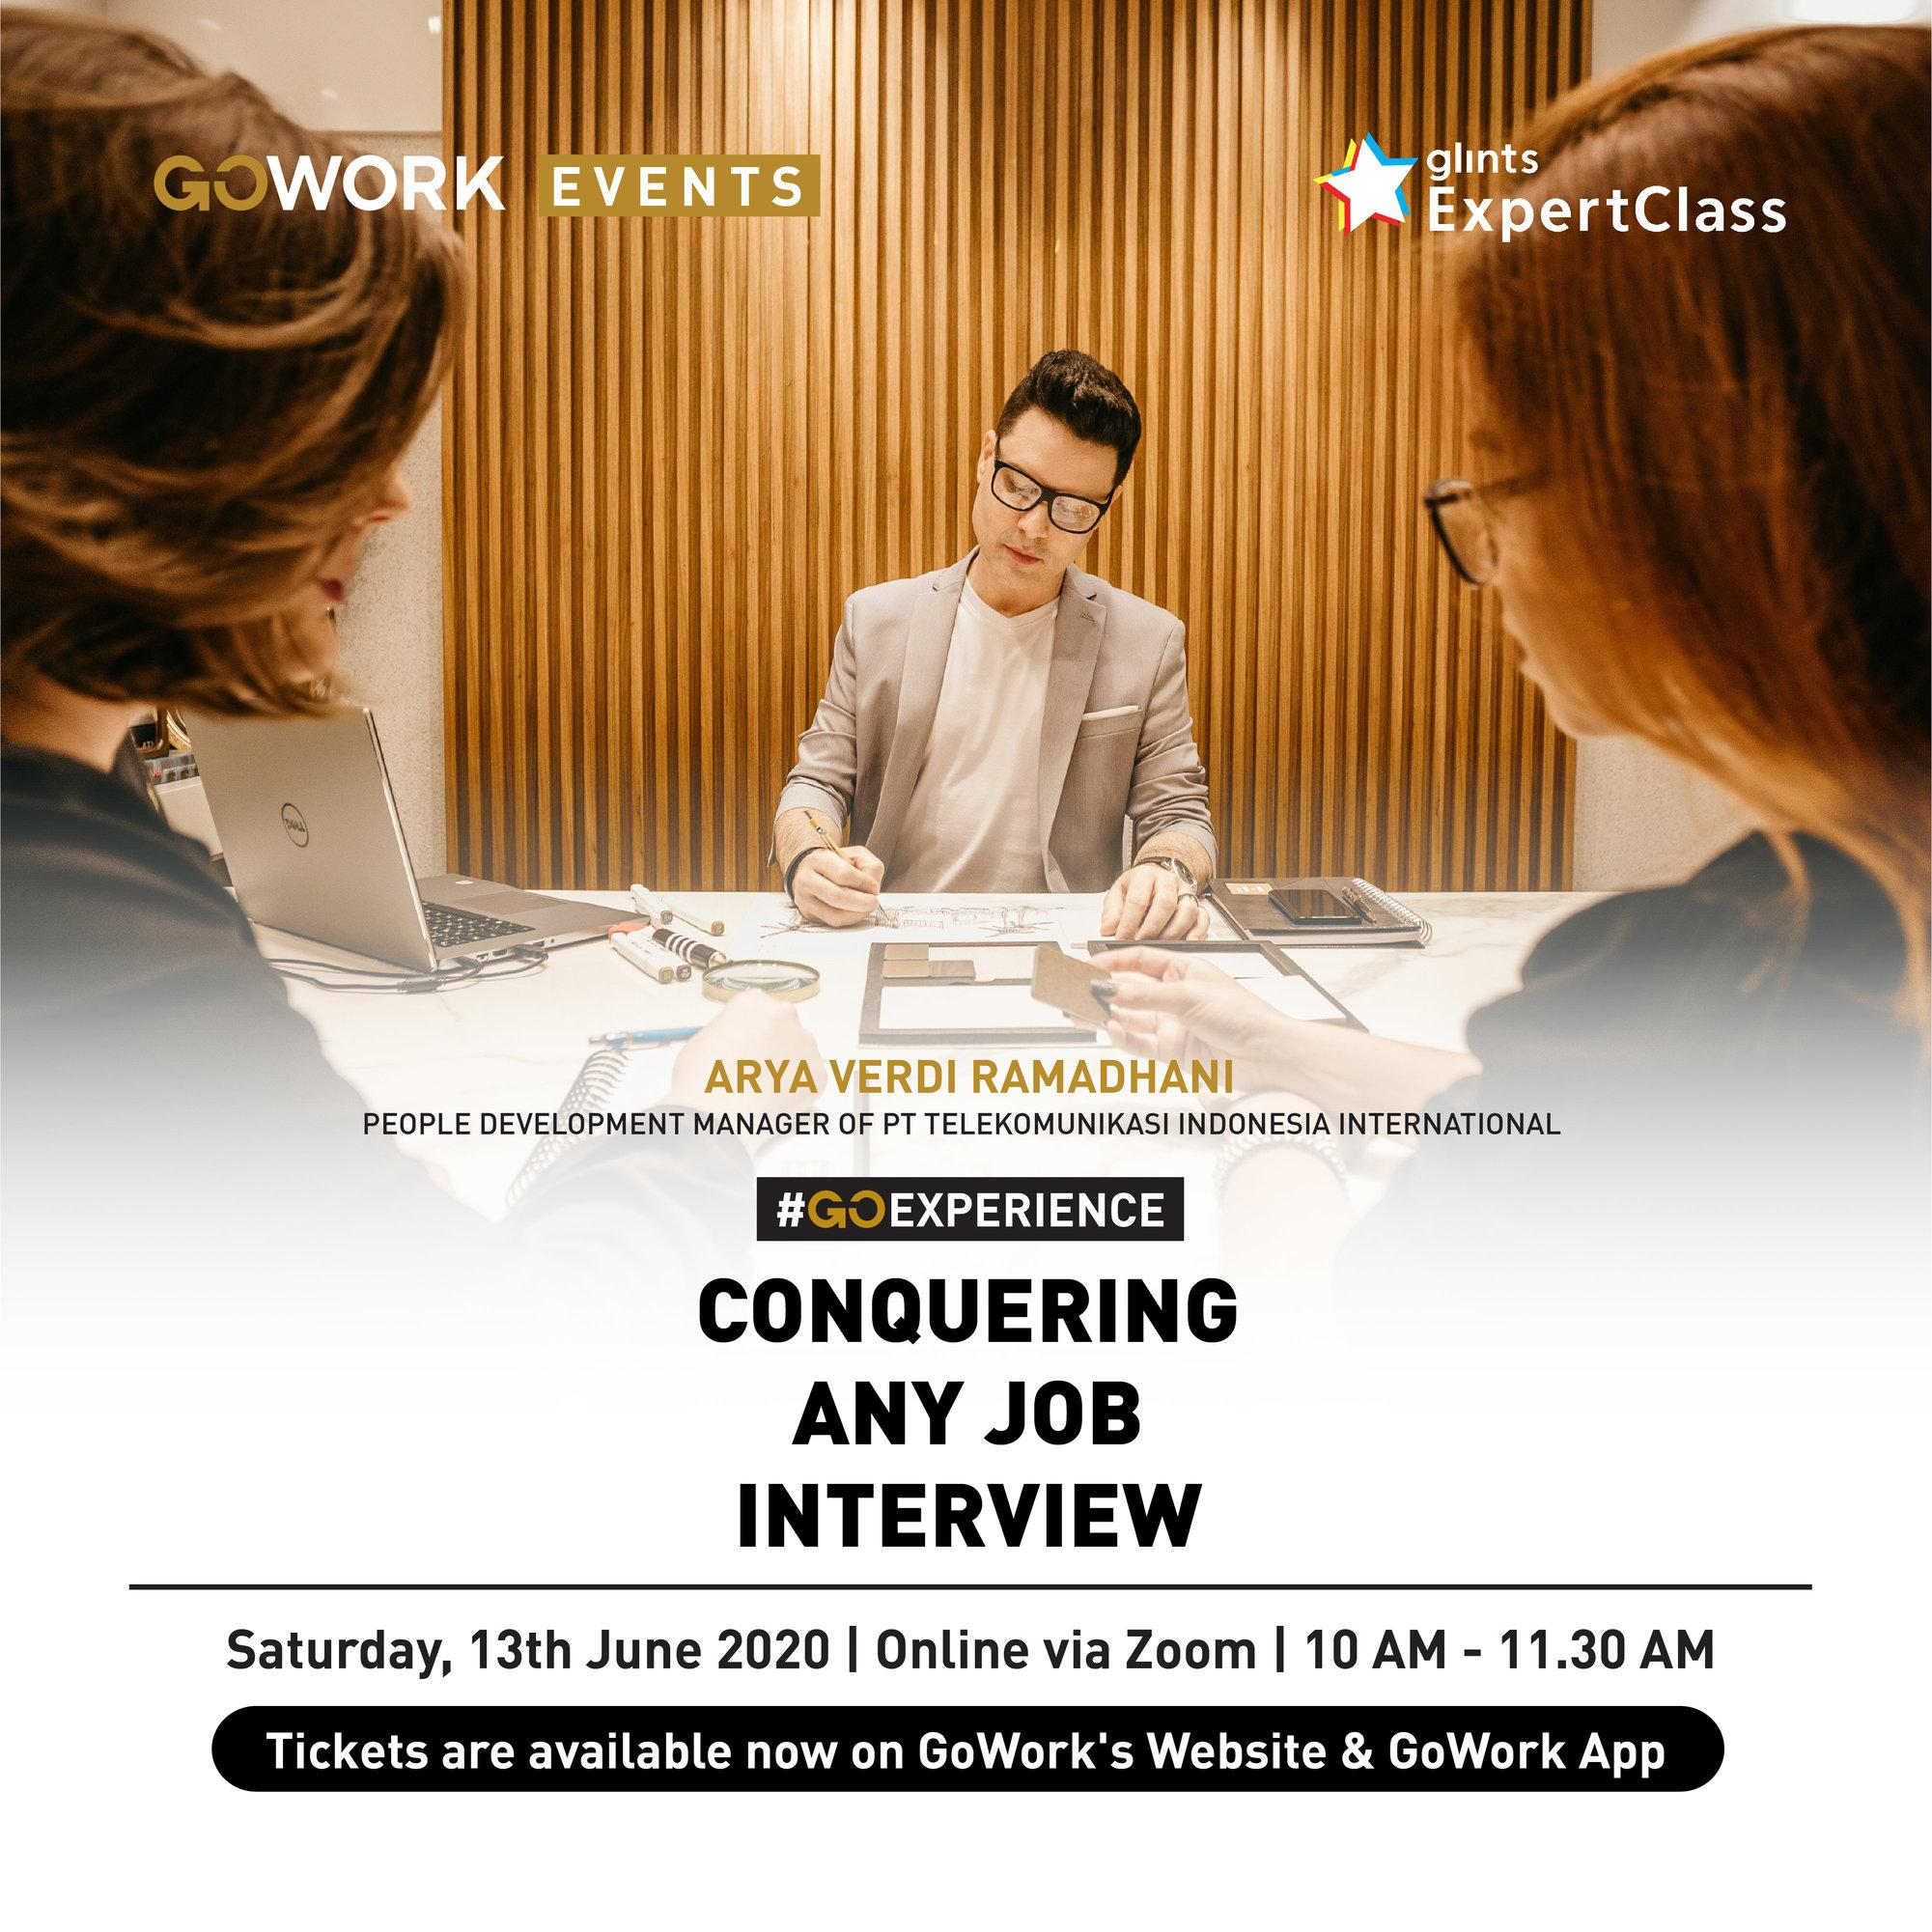 poster conquer any job interview